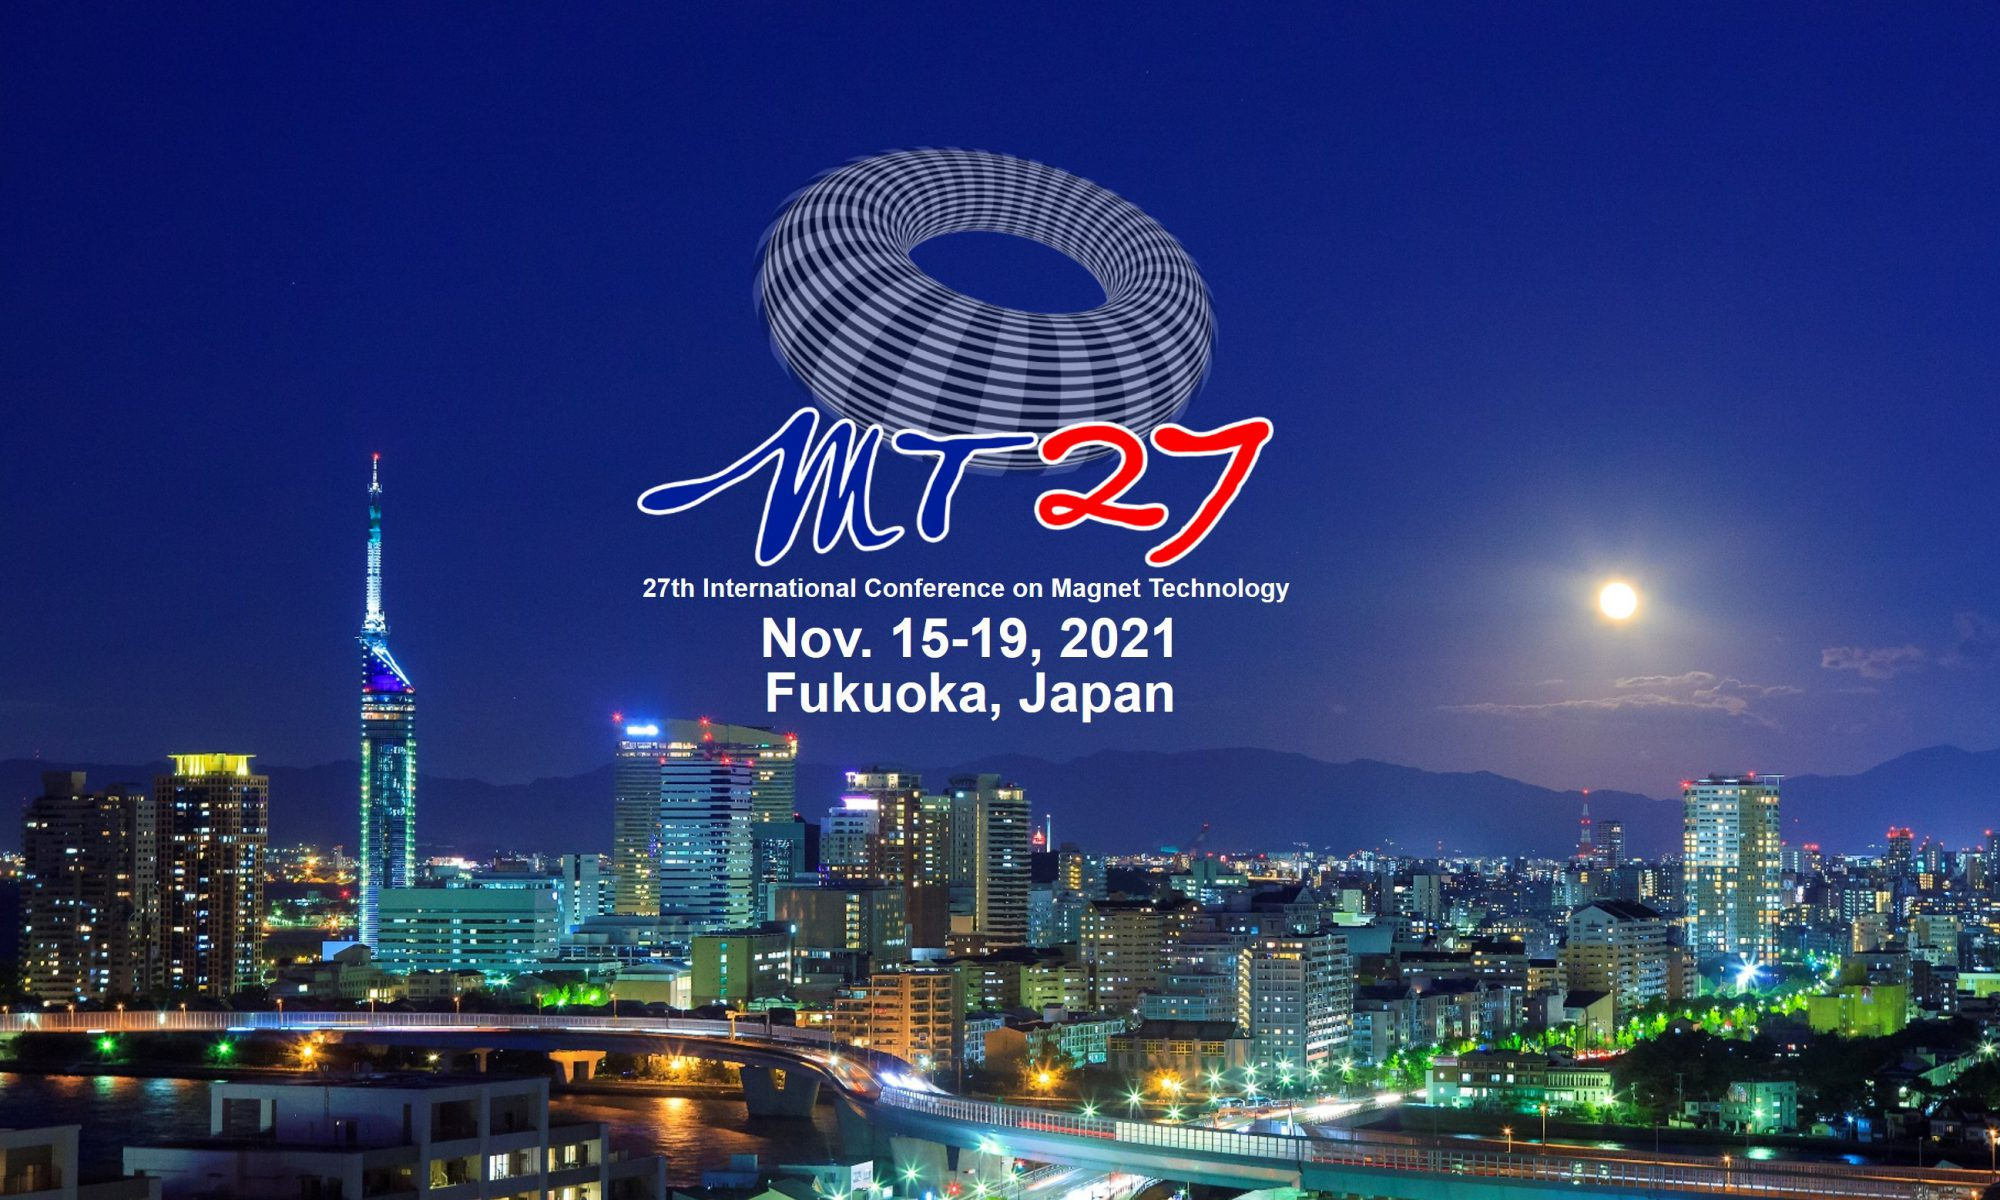 27th International Conference on Magnet Technology